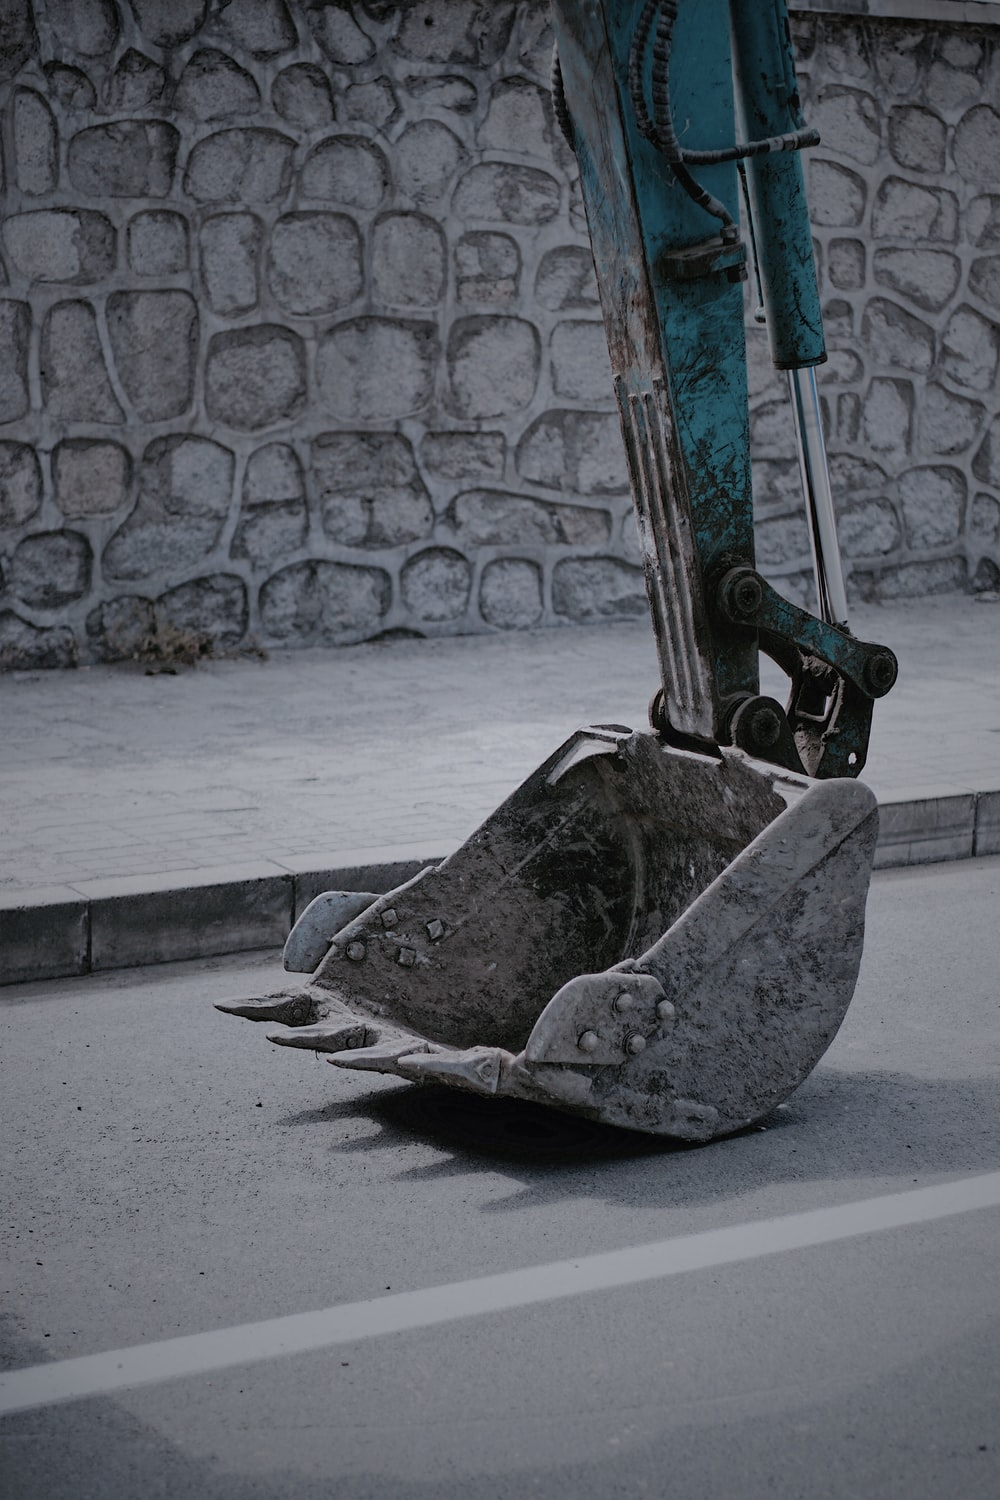 closeup photo of excavator bucket on road